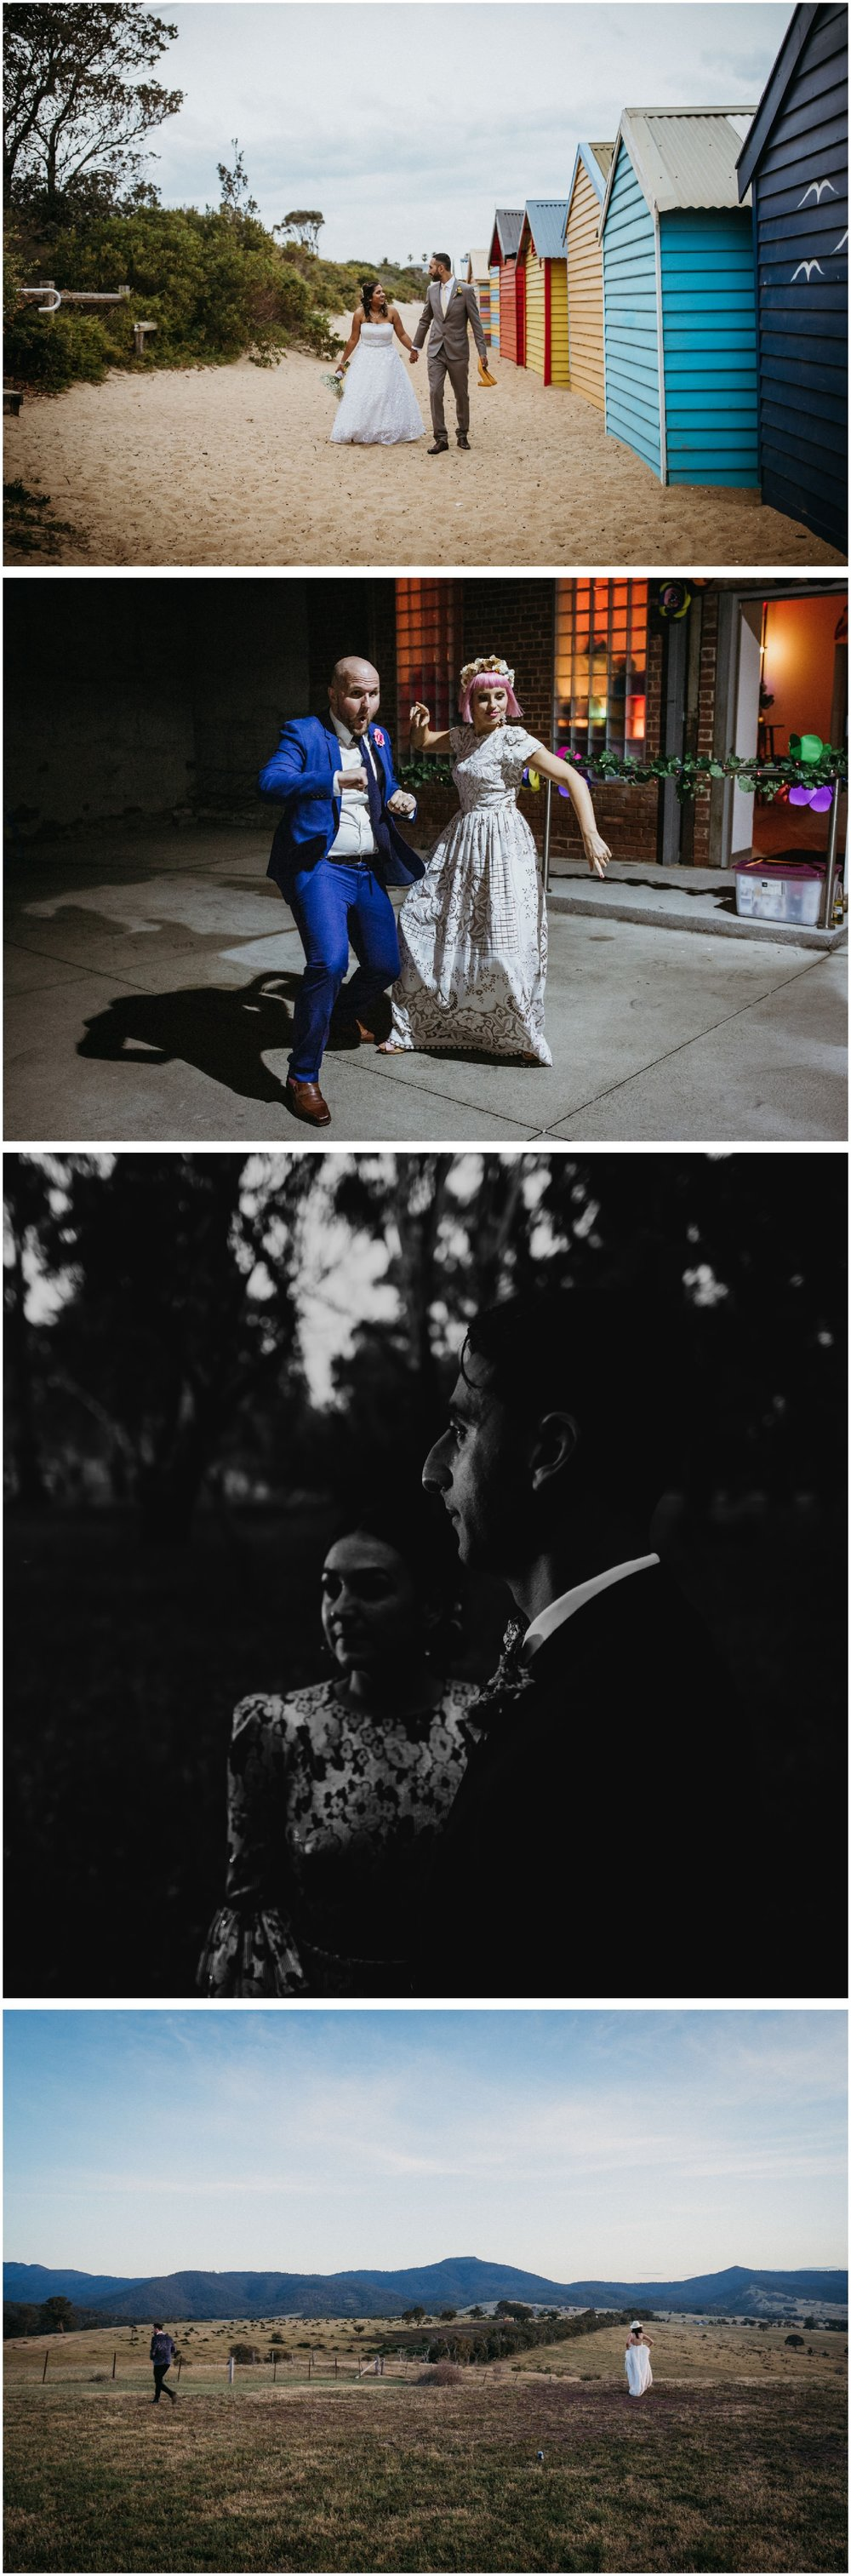 Melbourne Wedding Photographer - 2018 in review -185A2941.jpg